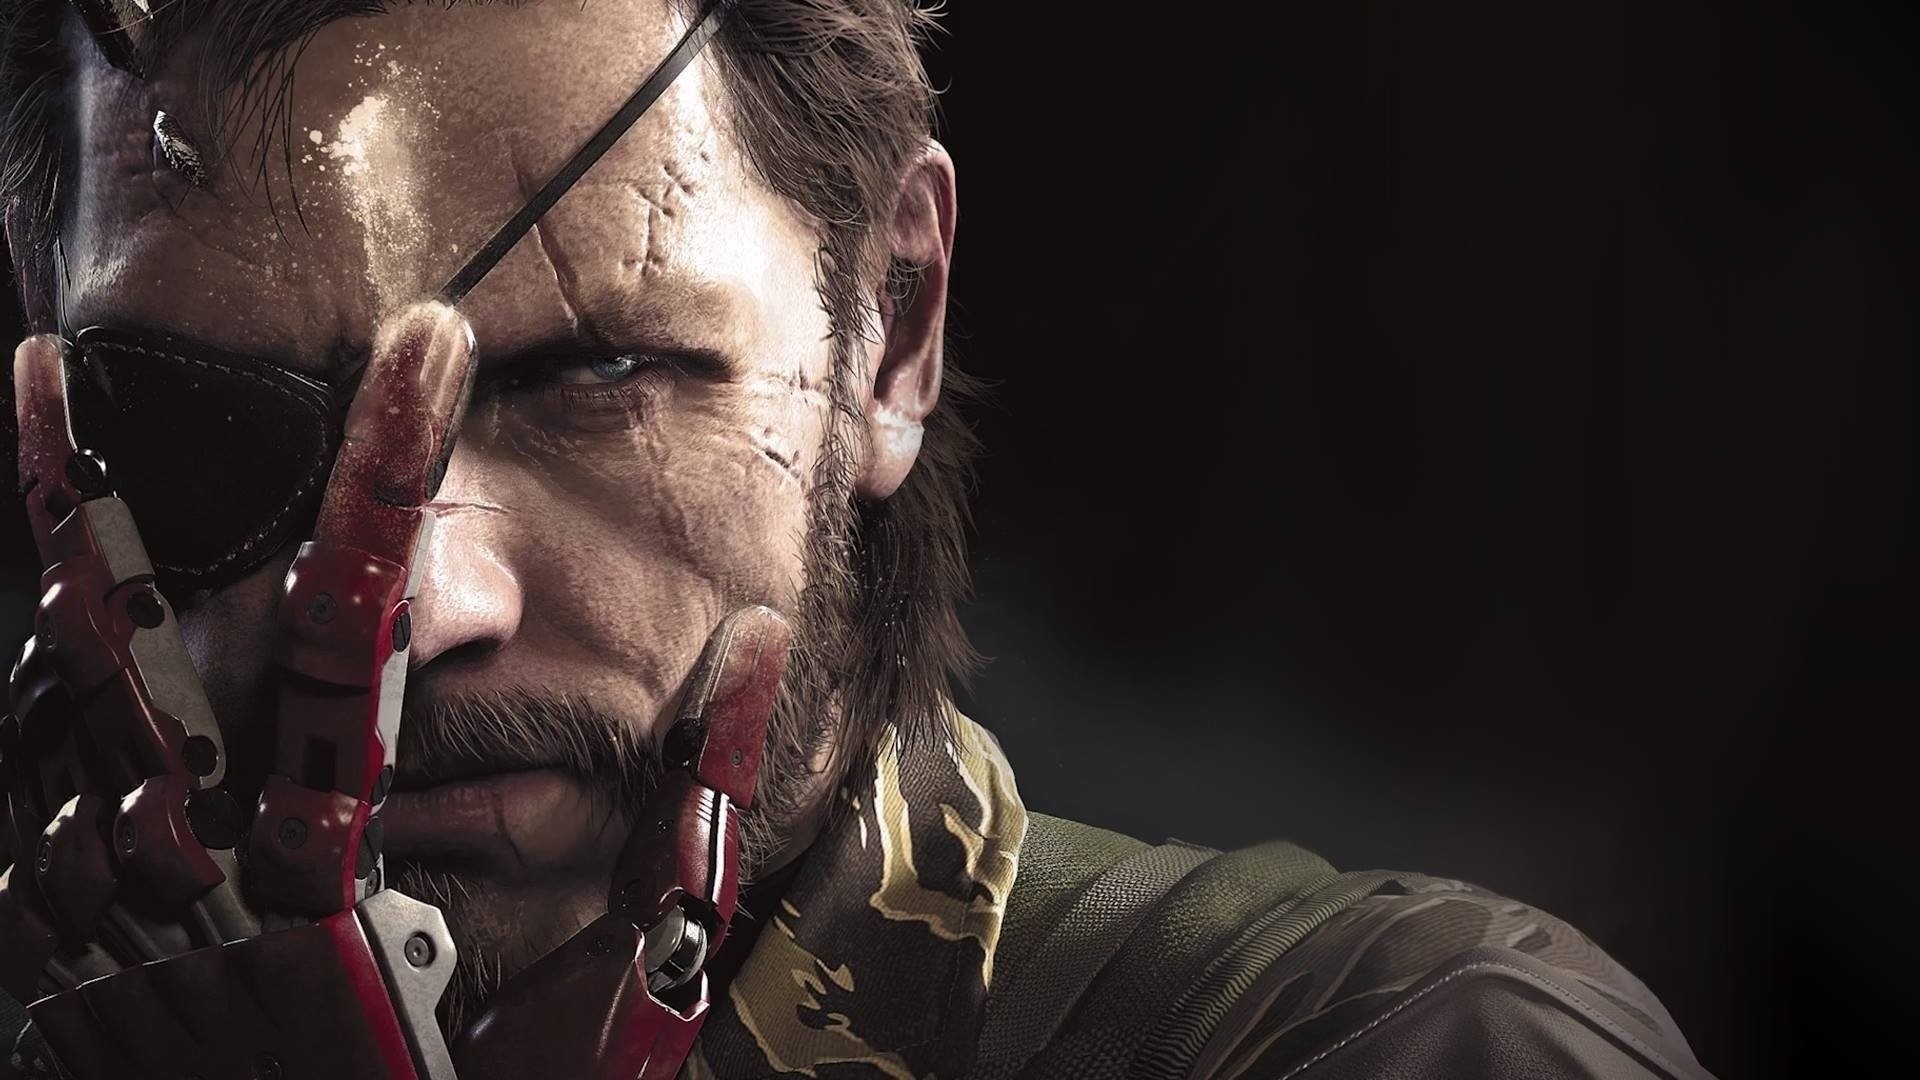 1920x1080 Metal Gear Solid V: The Phantom Pain Full Hd Wallpaper And for Metal Gear  Solid